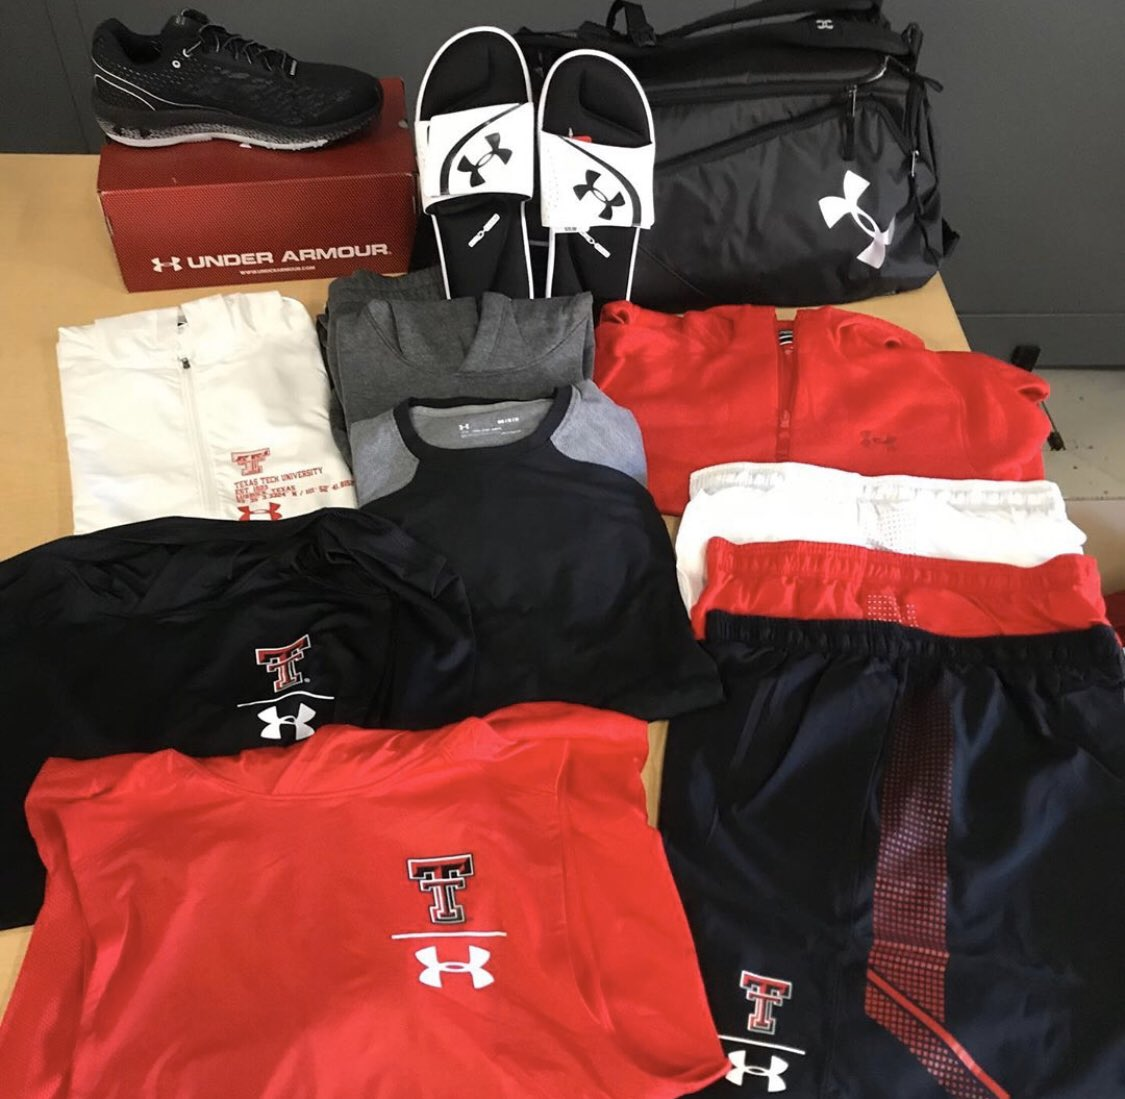 Swag bags for @TexasTechTF as they head to Nationals. #uniswag